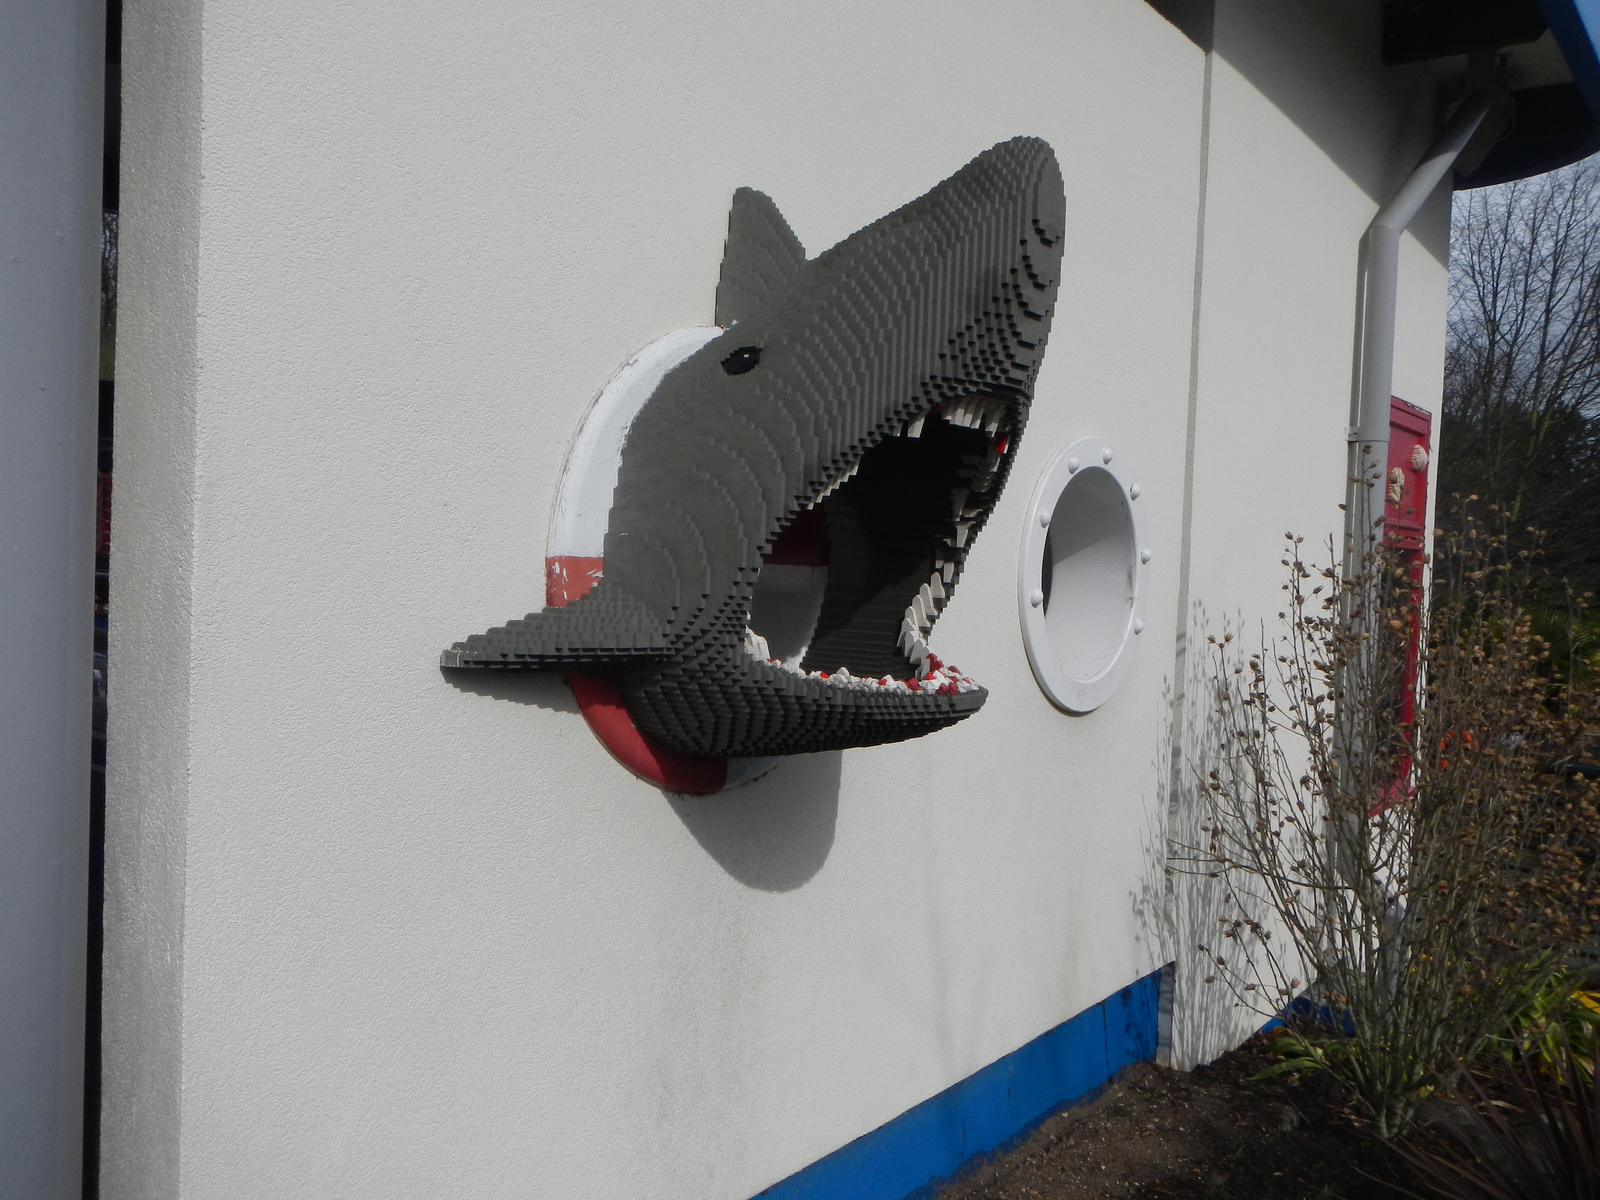 Lego Shark Attack!